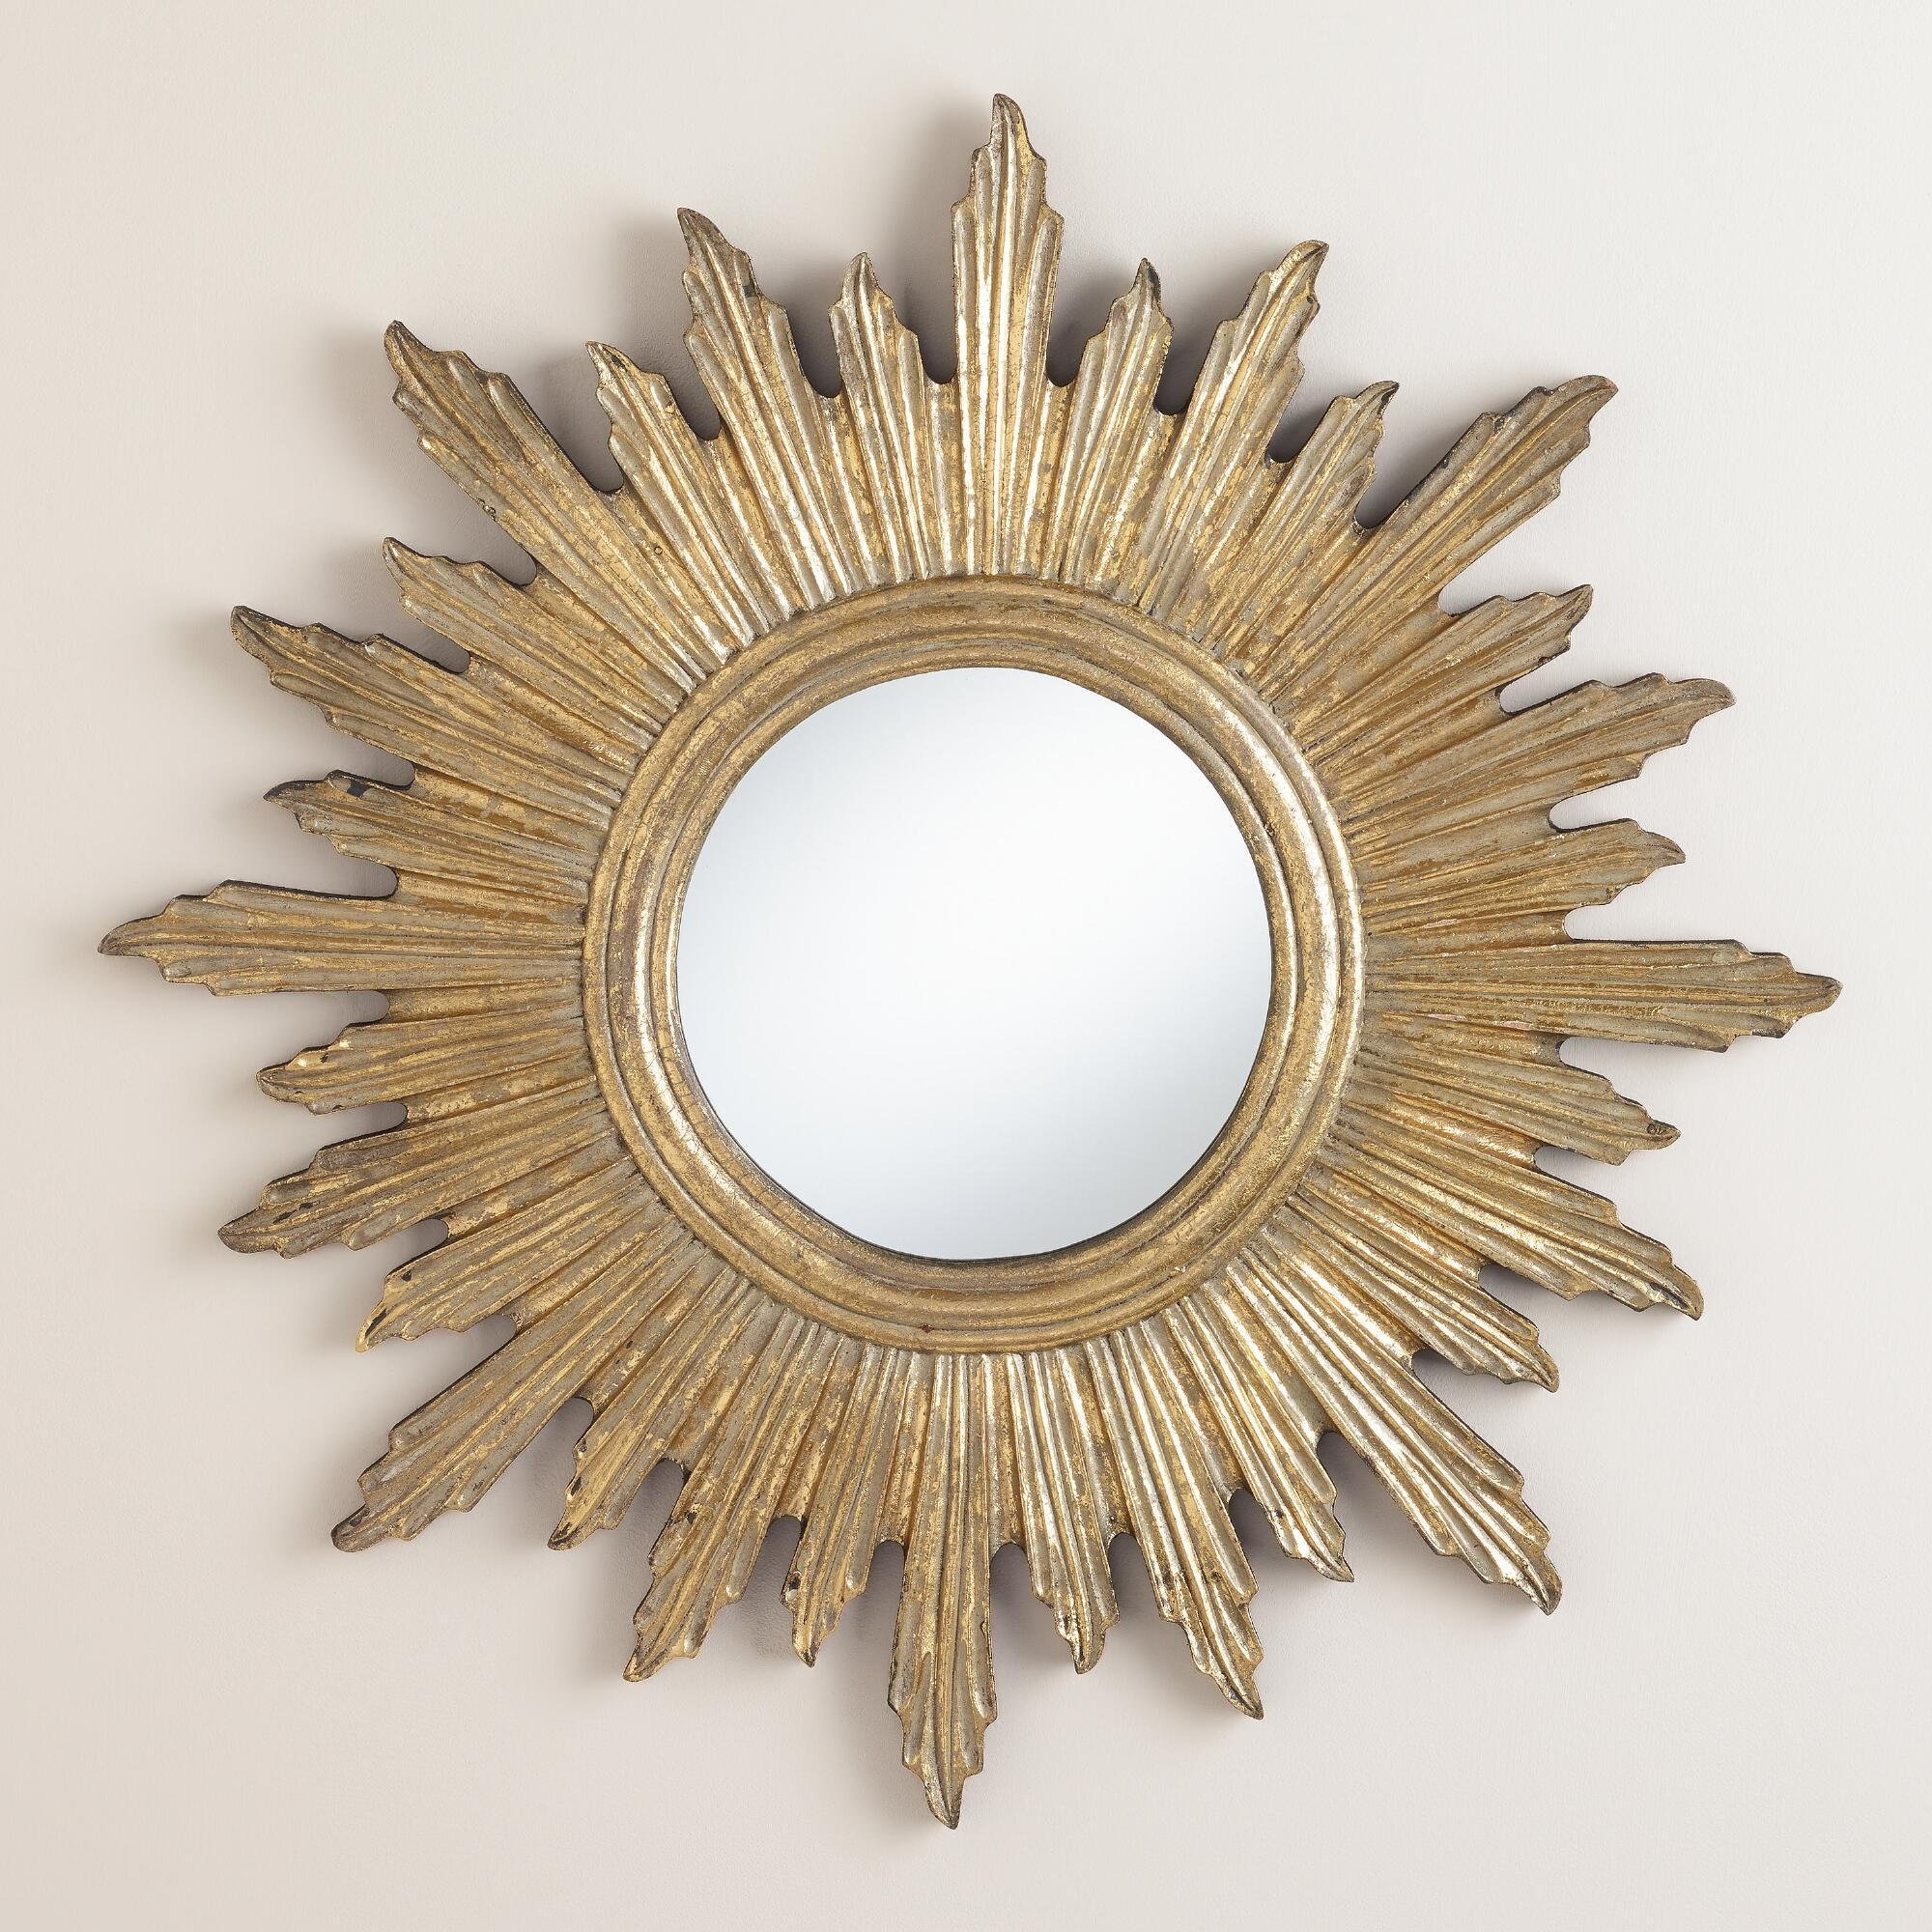 Large Antique Gold Leila Sunburst Mirror In India Partition With Large Sunburst Mirrors For Sale (Image 4 of 15)